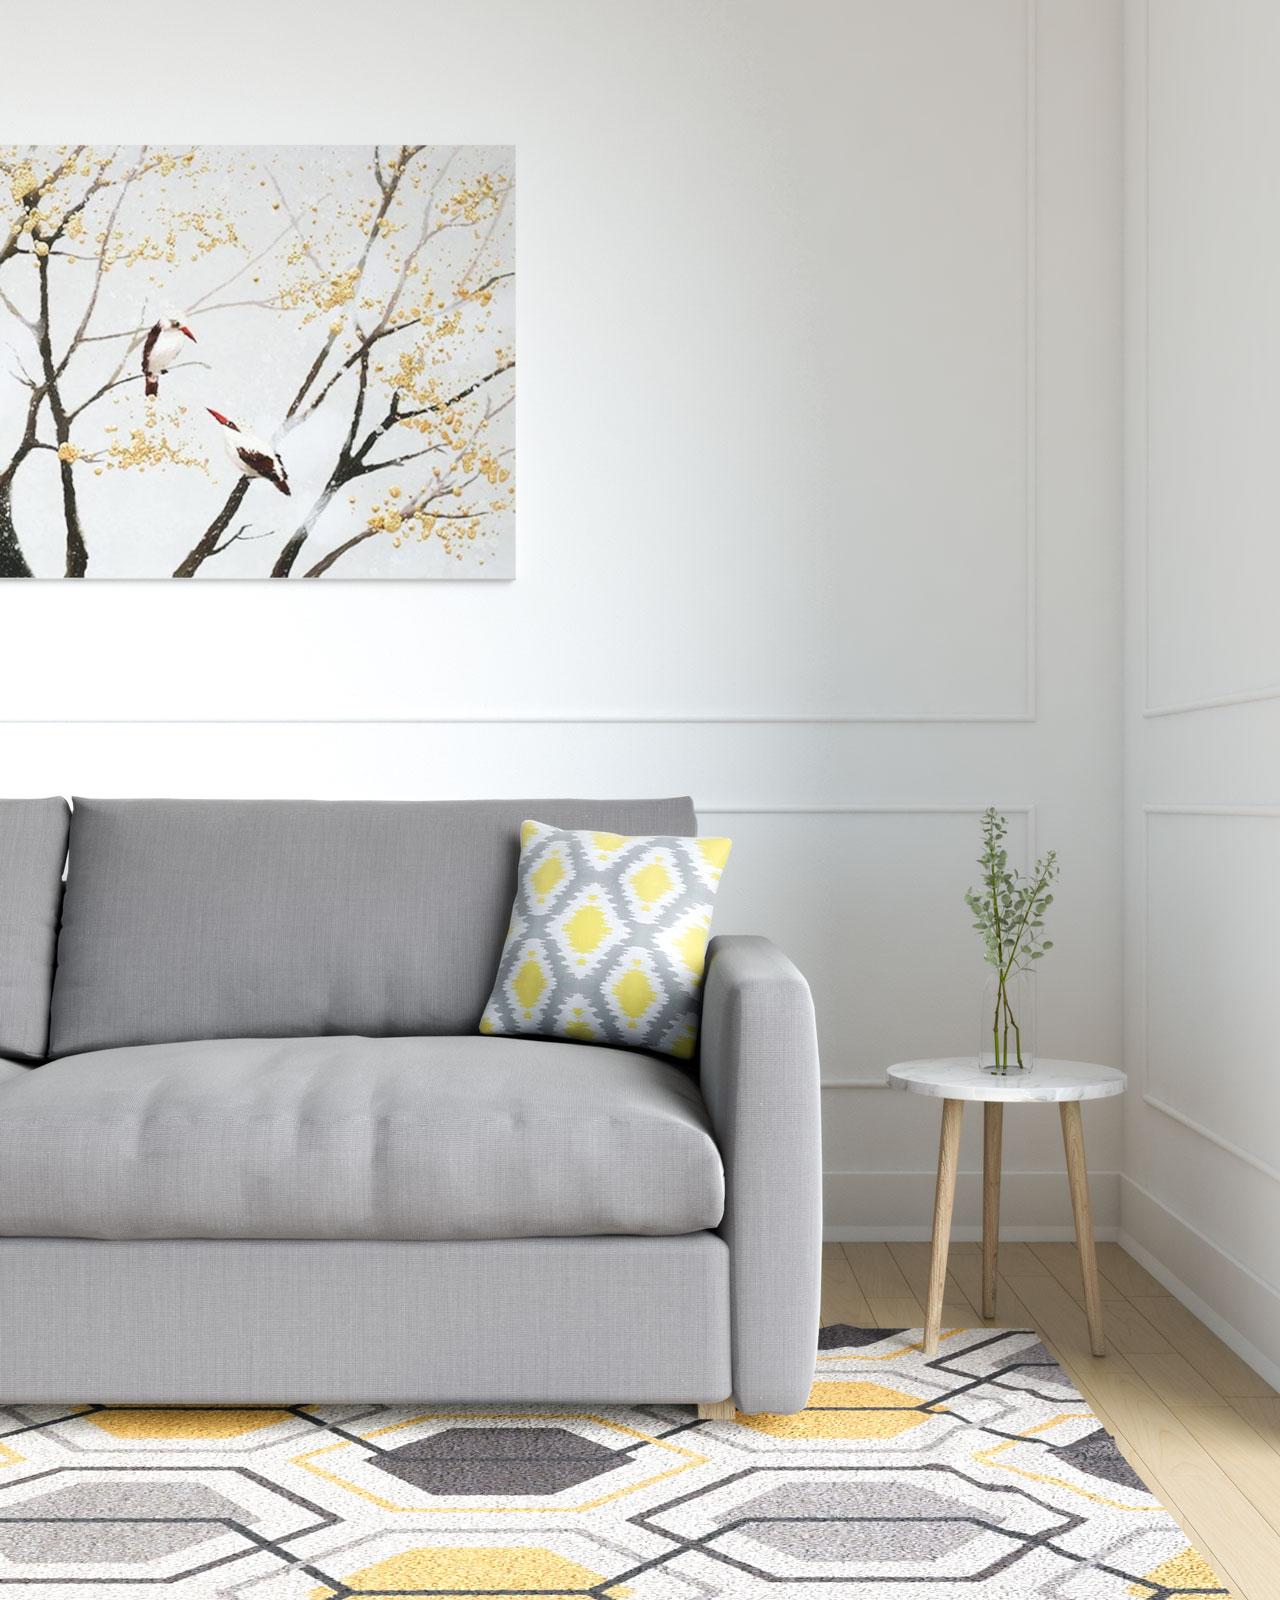 Gray and yellow pillow with grey couch